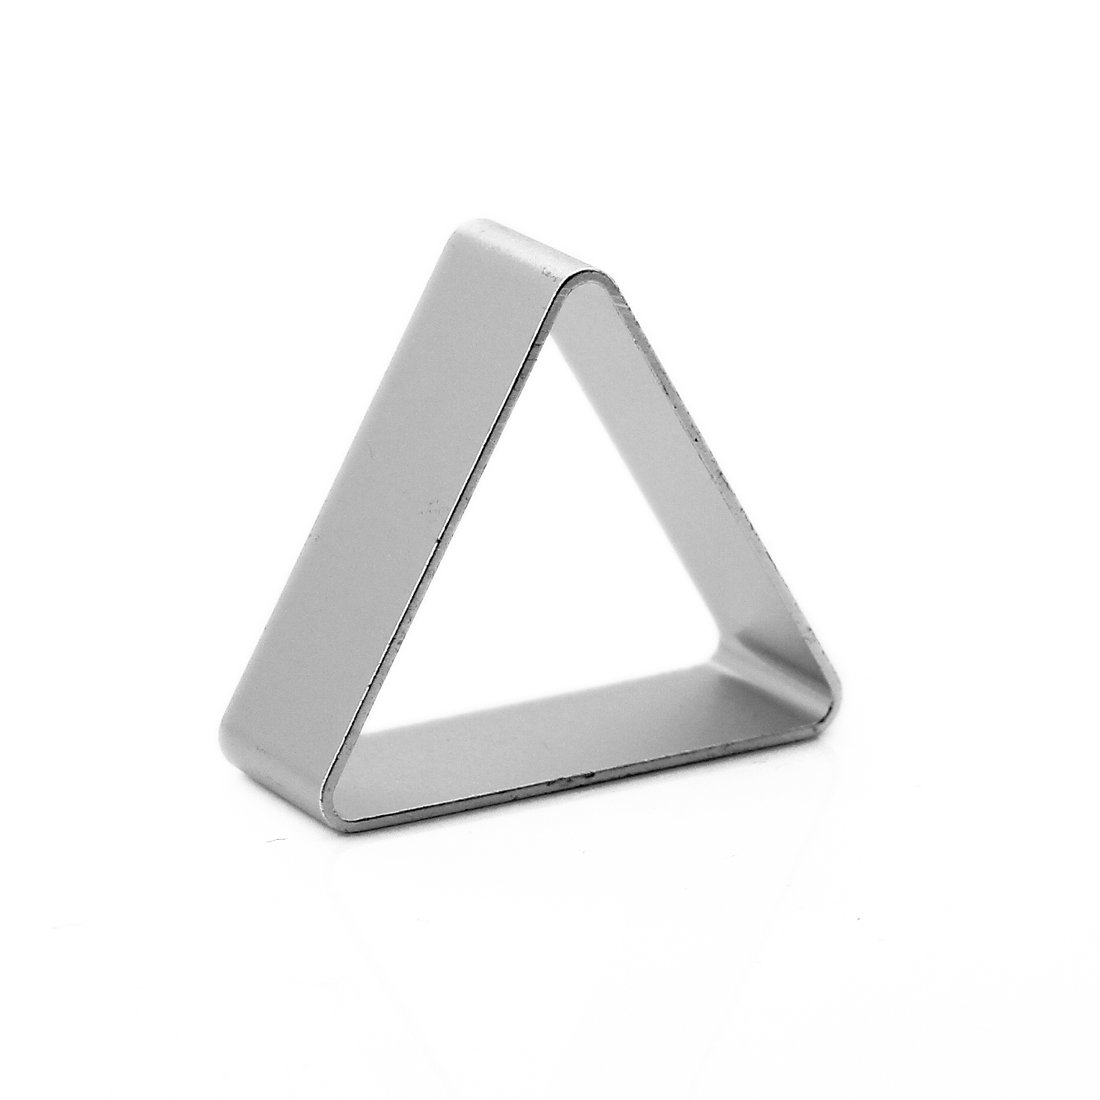 joyliveCY Aluminum Fondant Decoration Cooky Biscuit Cutter Cake Tool Sugar Craft Diy Mould Model=Triangle Cy-buity